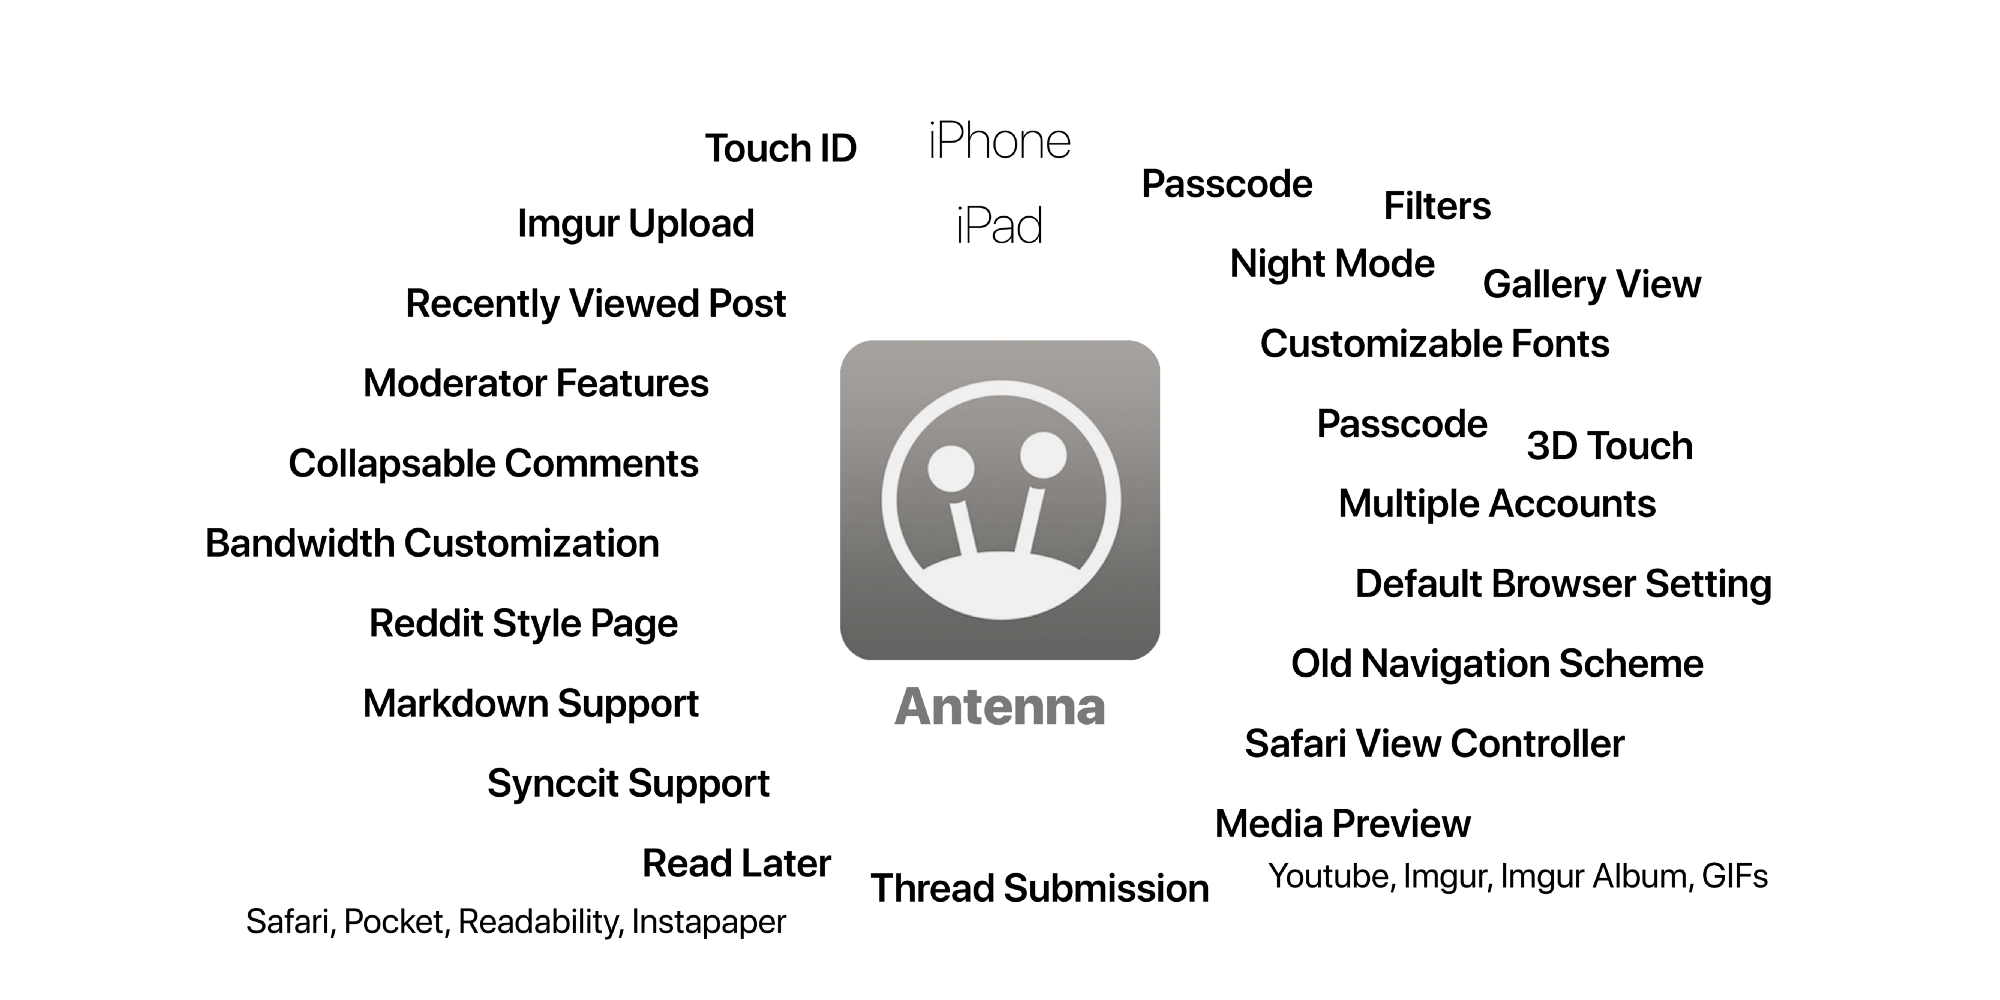 Antenna Is Very Similar To The Narwhal It Looks Even More Old Fashioned There Are Tons Of Customization You Can Have Also Offers Thumbnail View